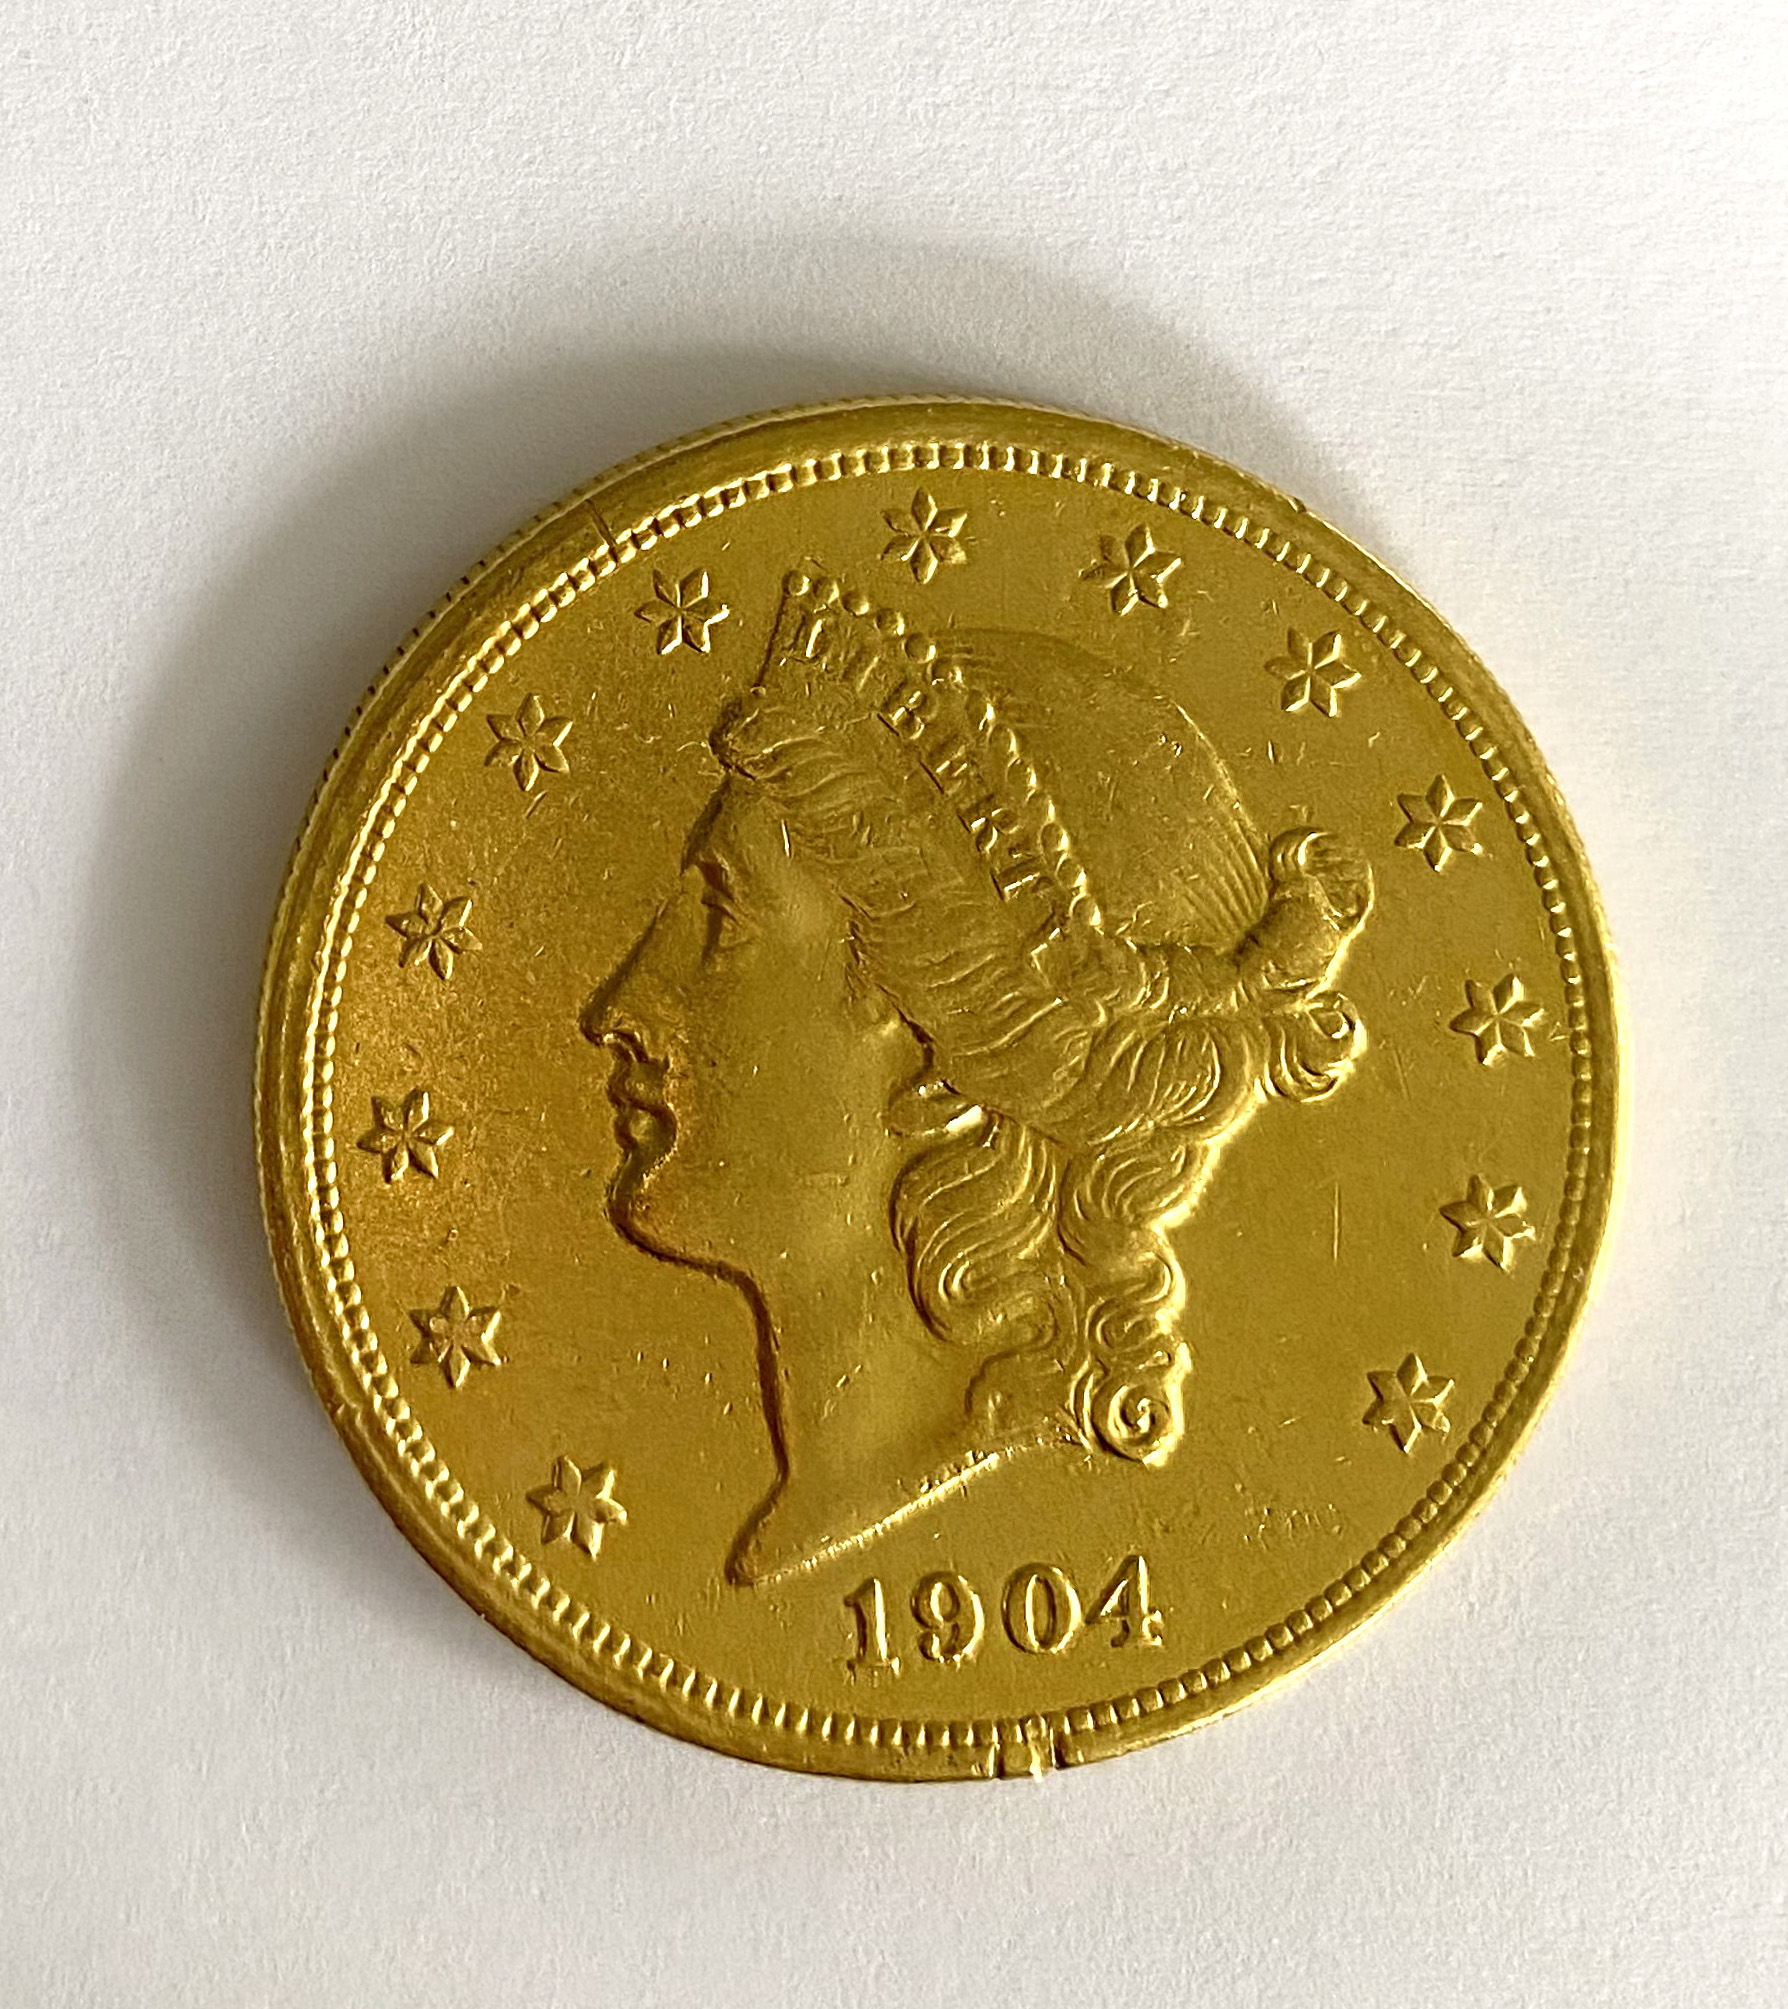 A United States of America $20 coin,